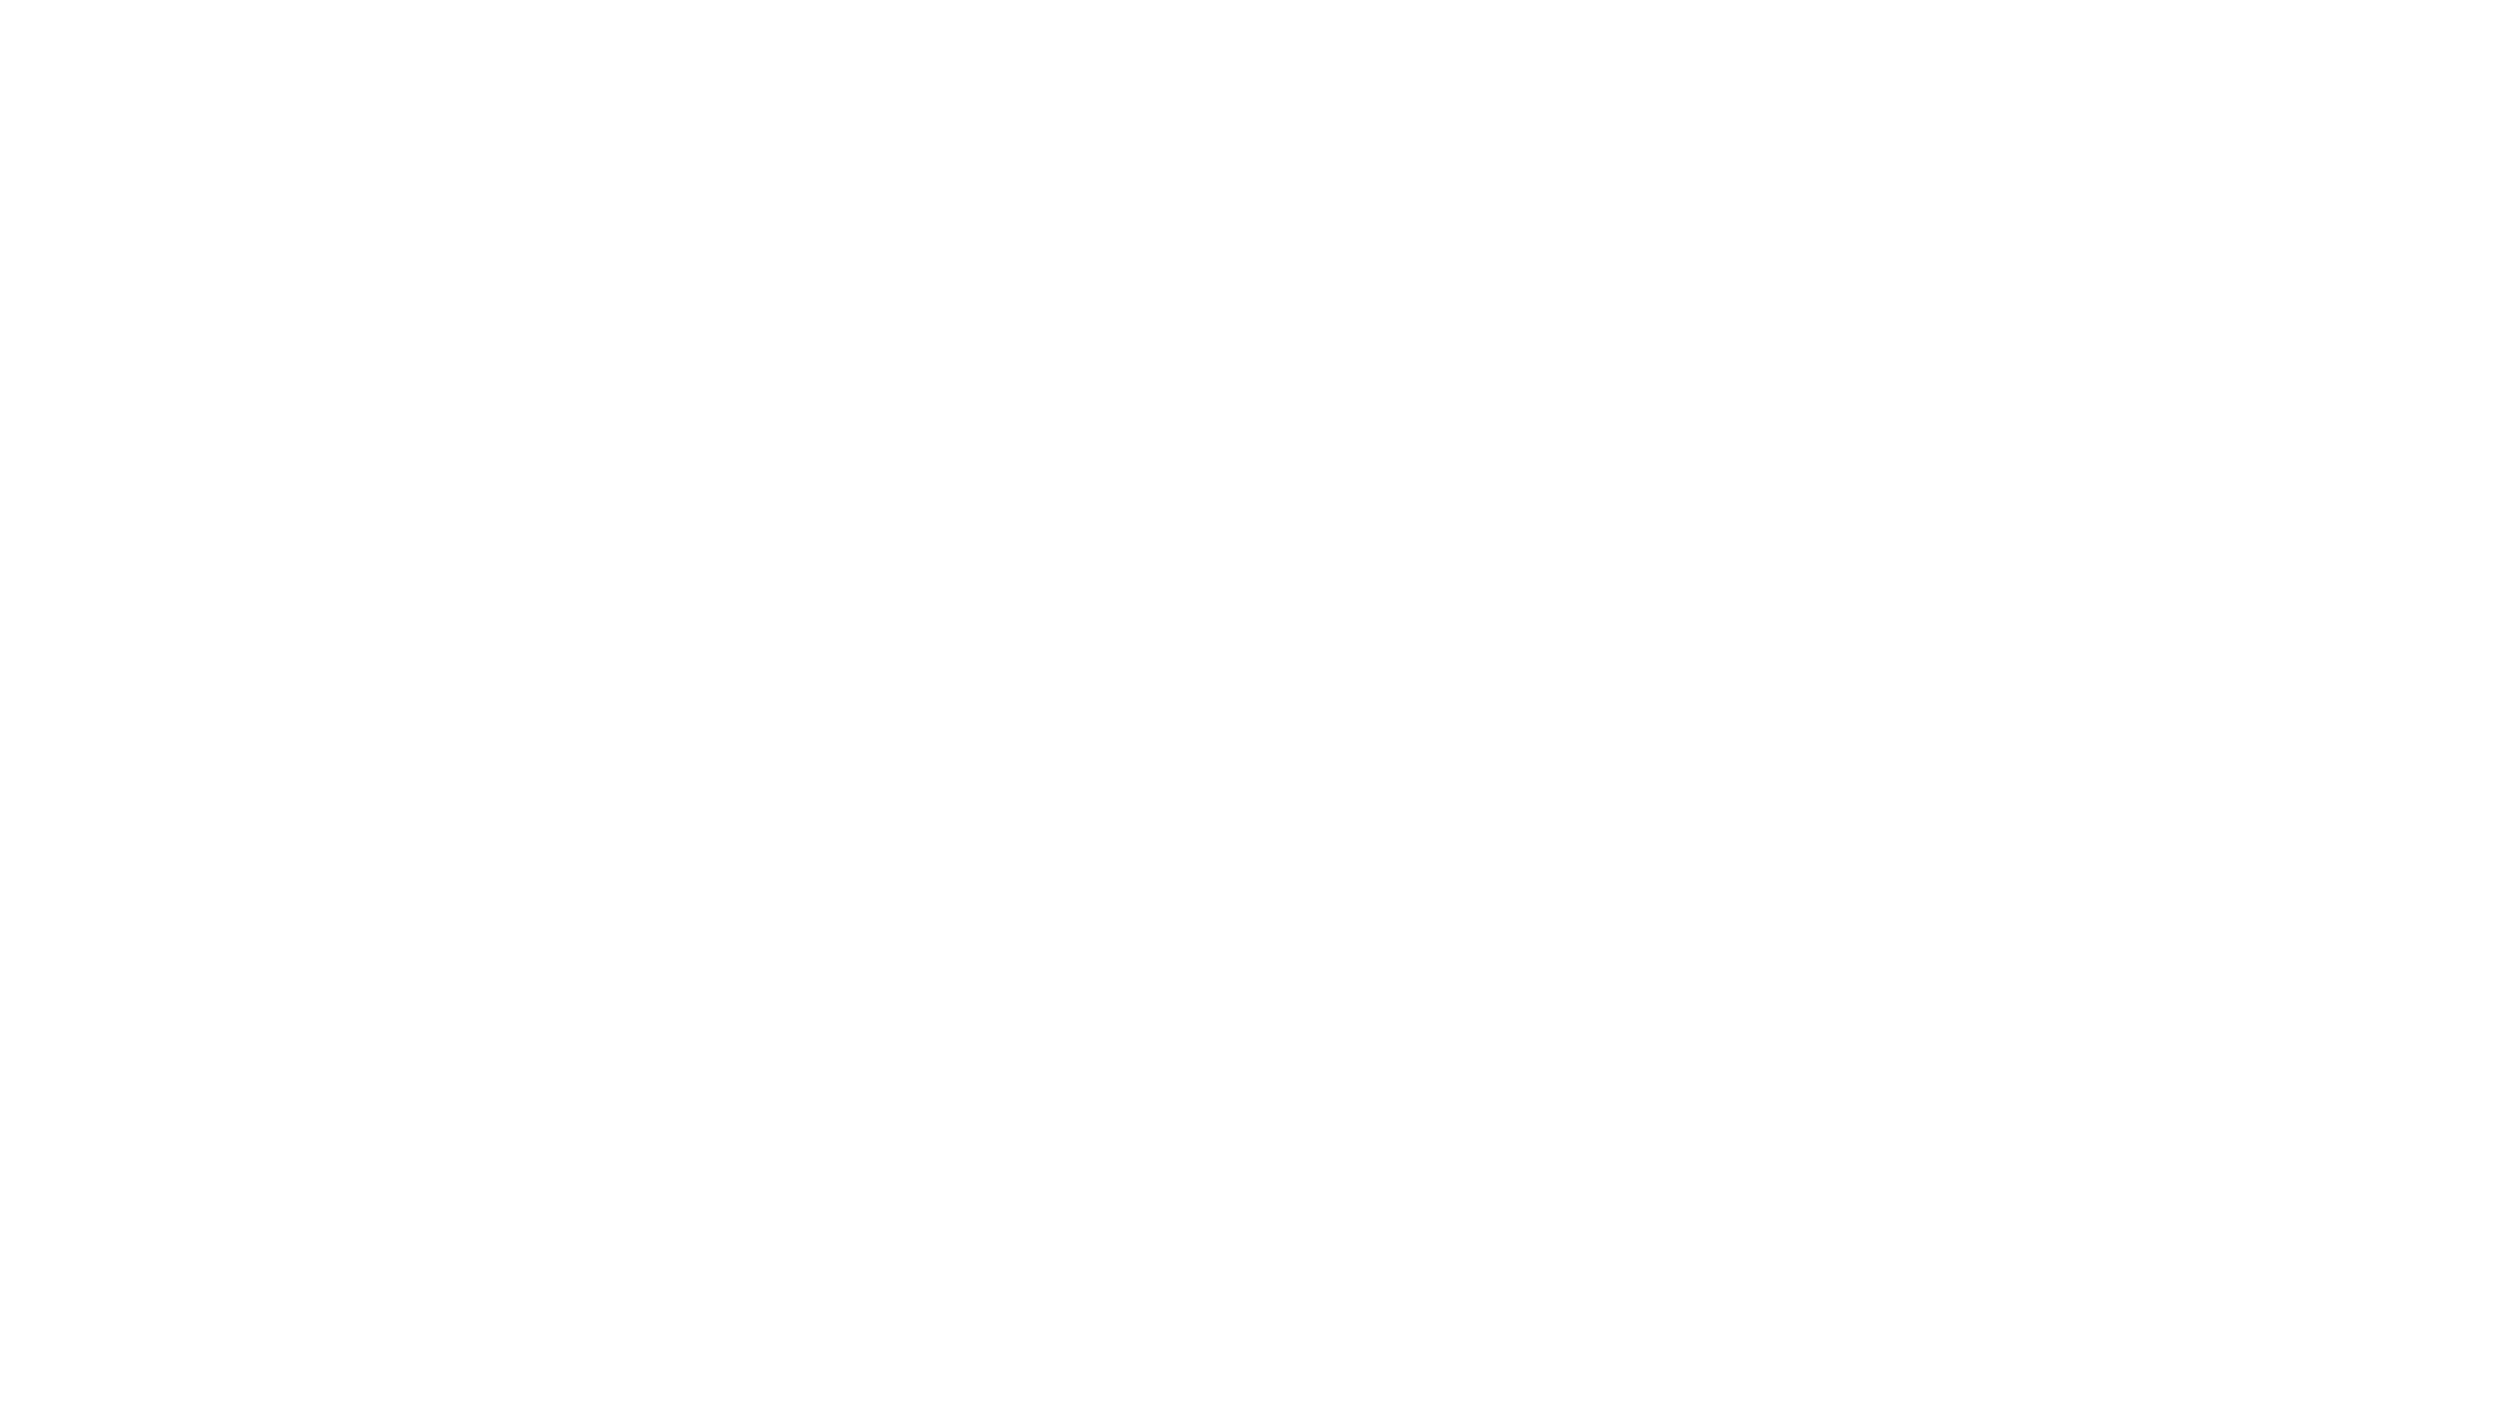 Dove Springs Proud-17.png